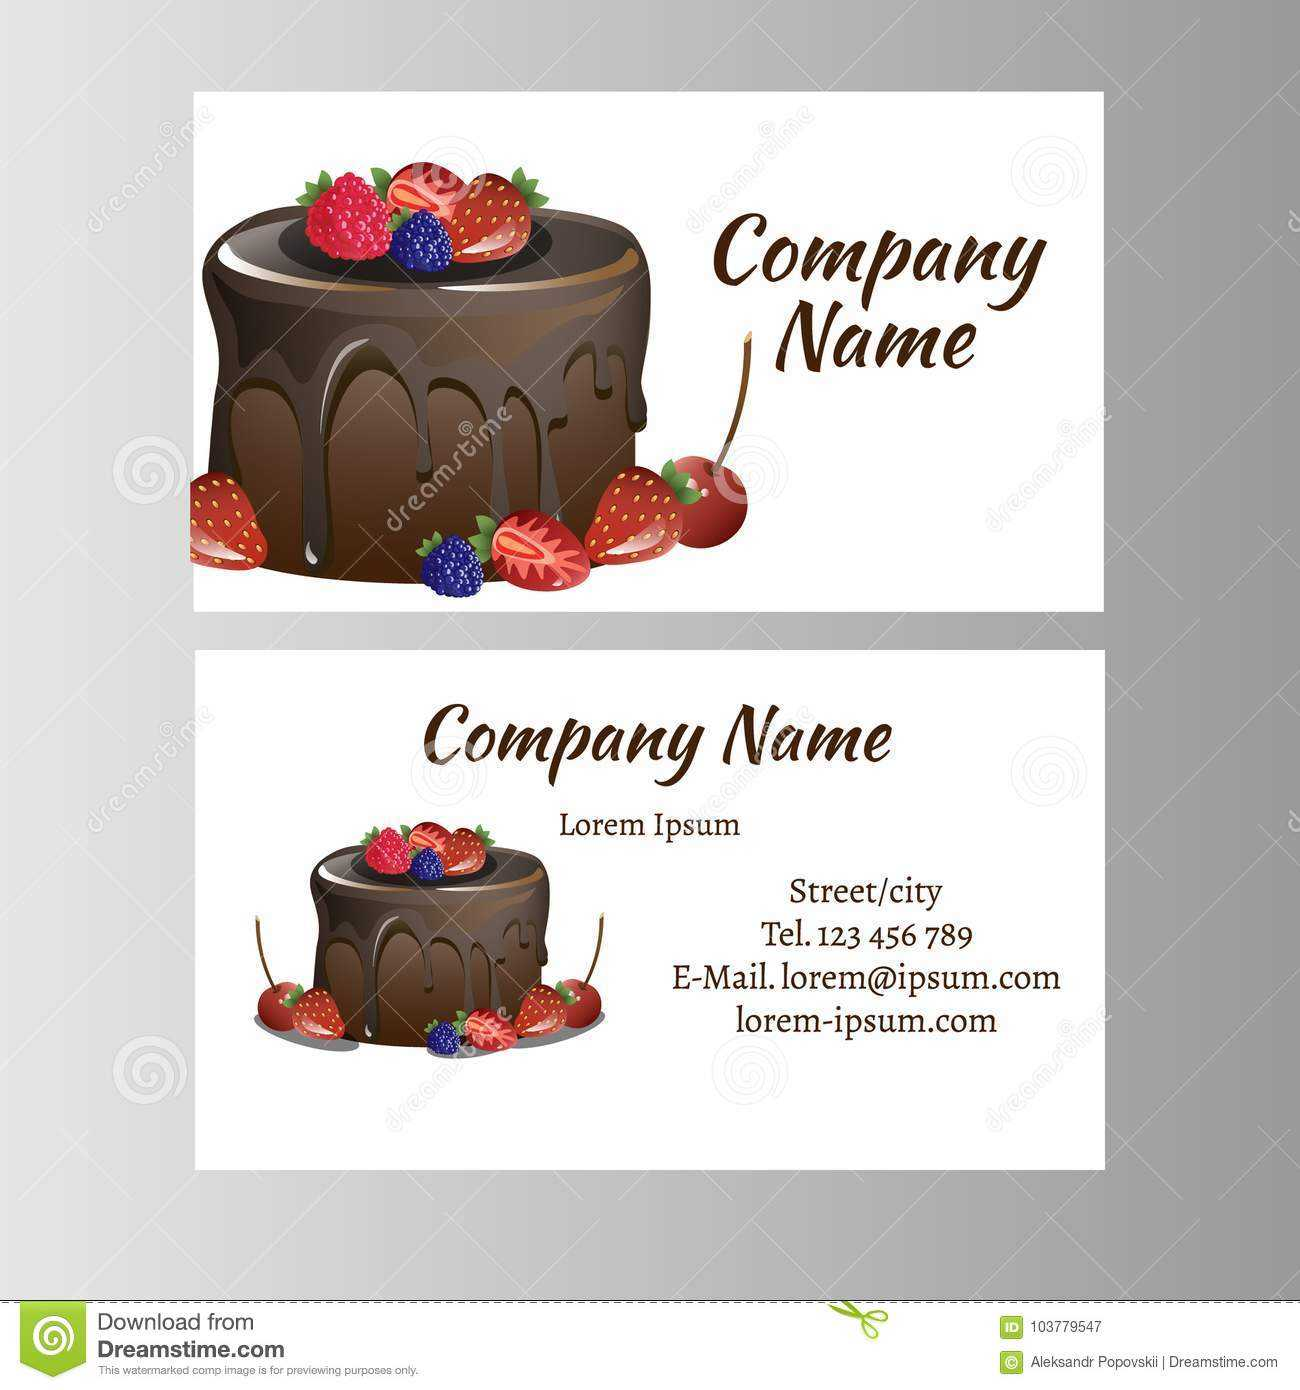 Business Card Template For Bakery Business. Stock Vector With Cake Business Cards Templates Free